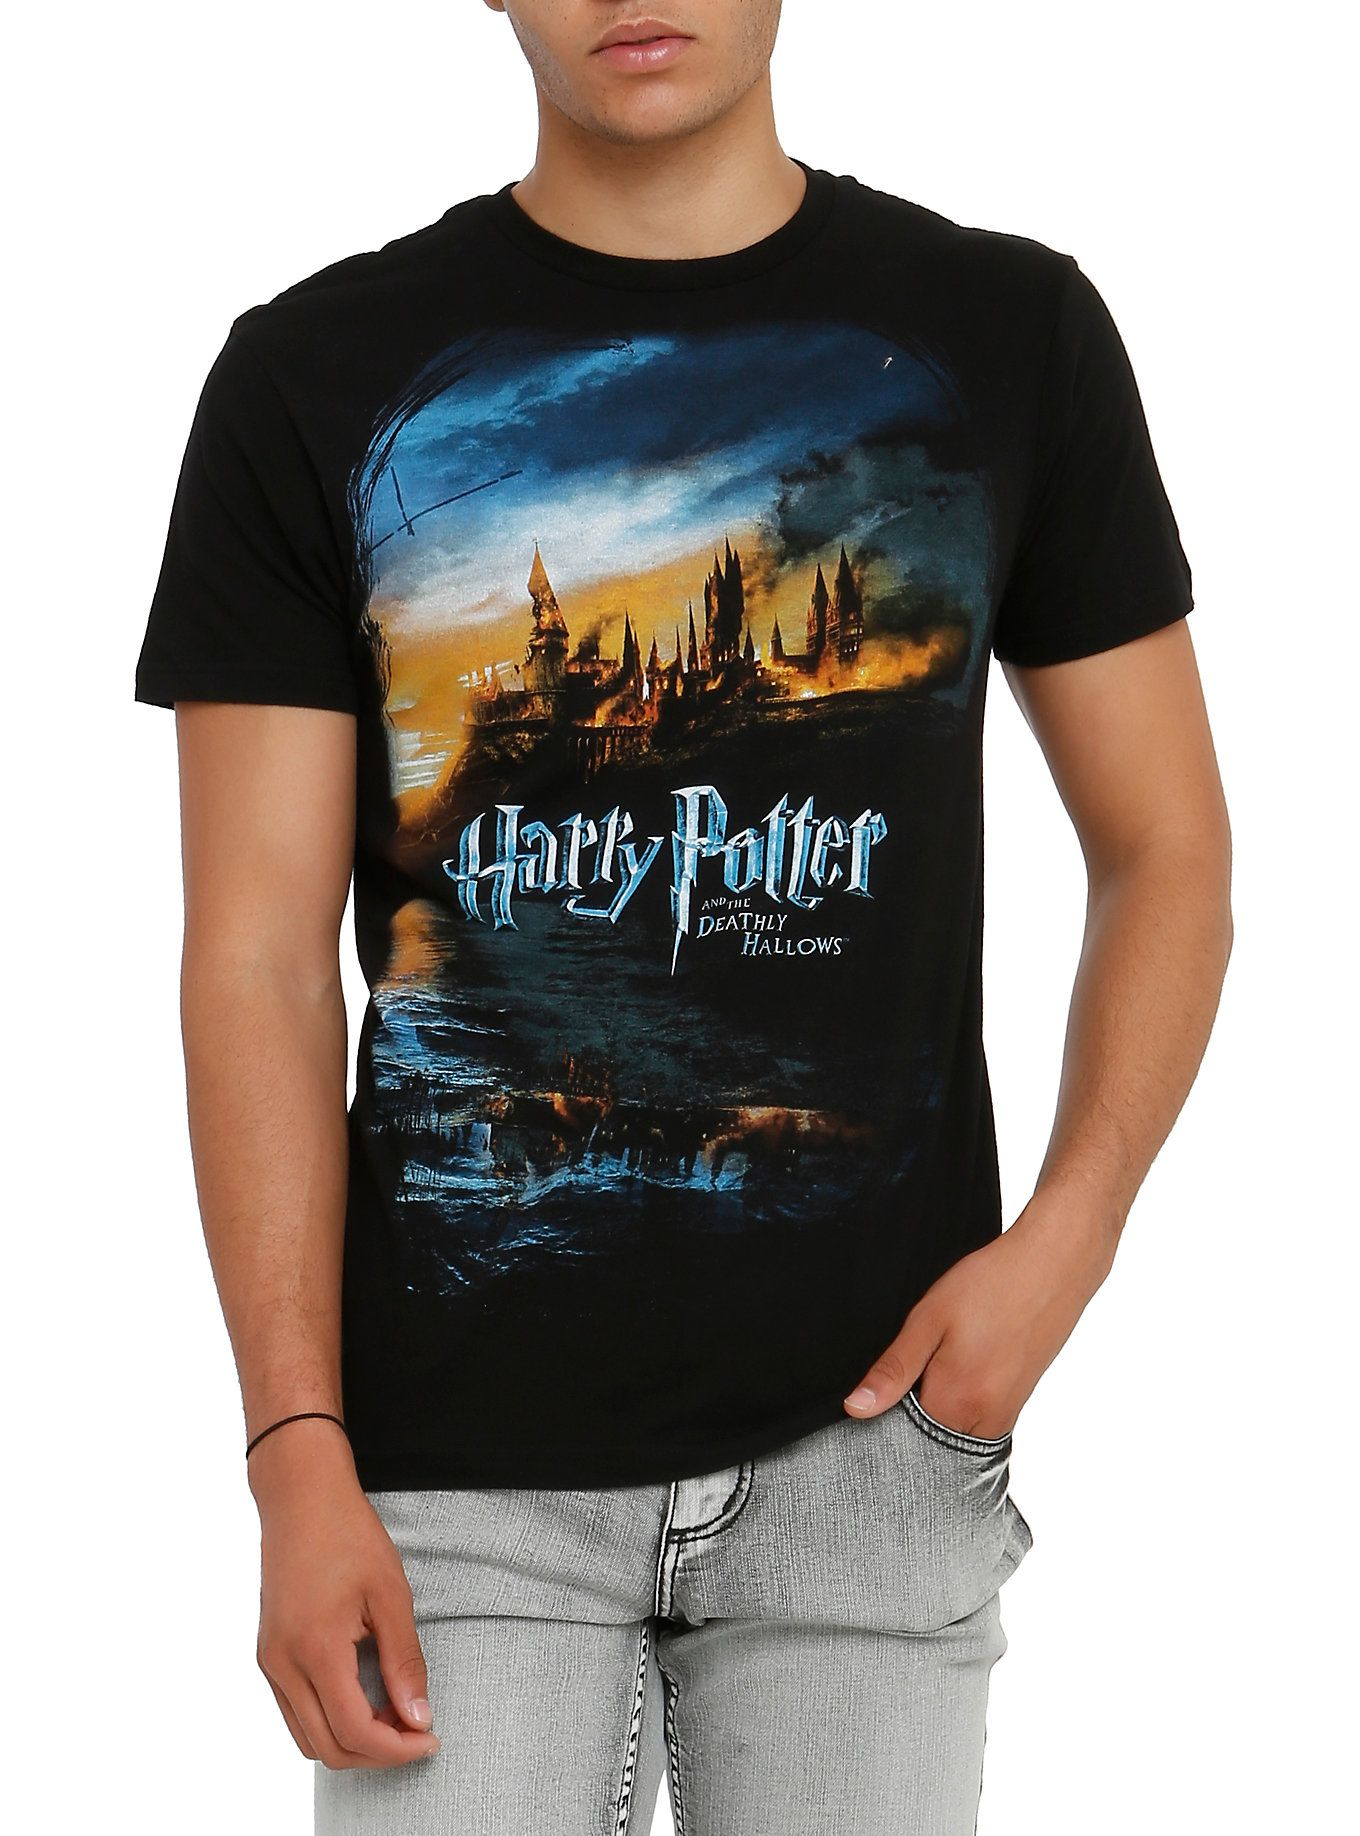 Harry potter and the deathly hallows tshirt shirts